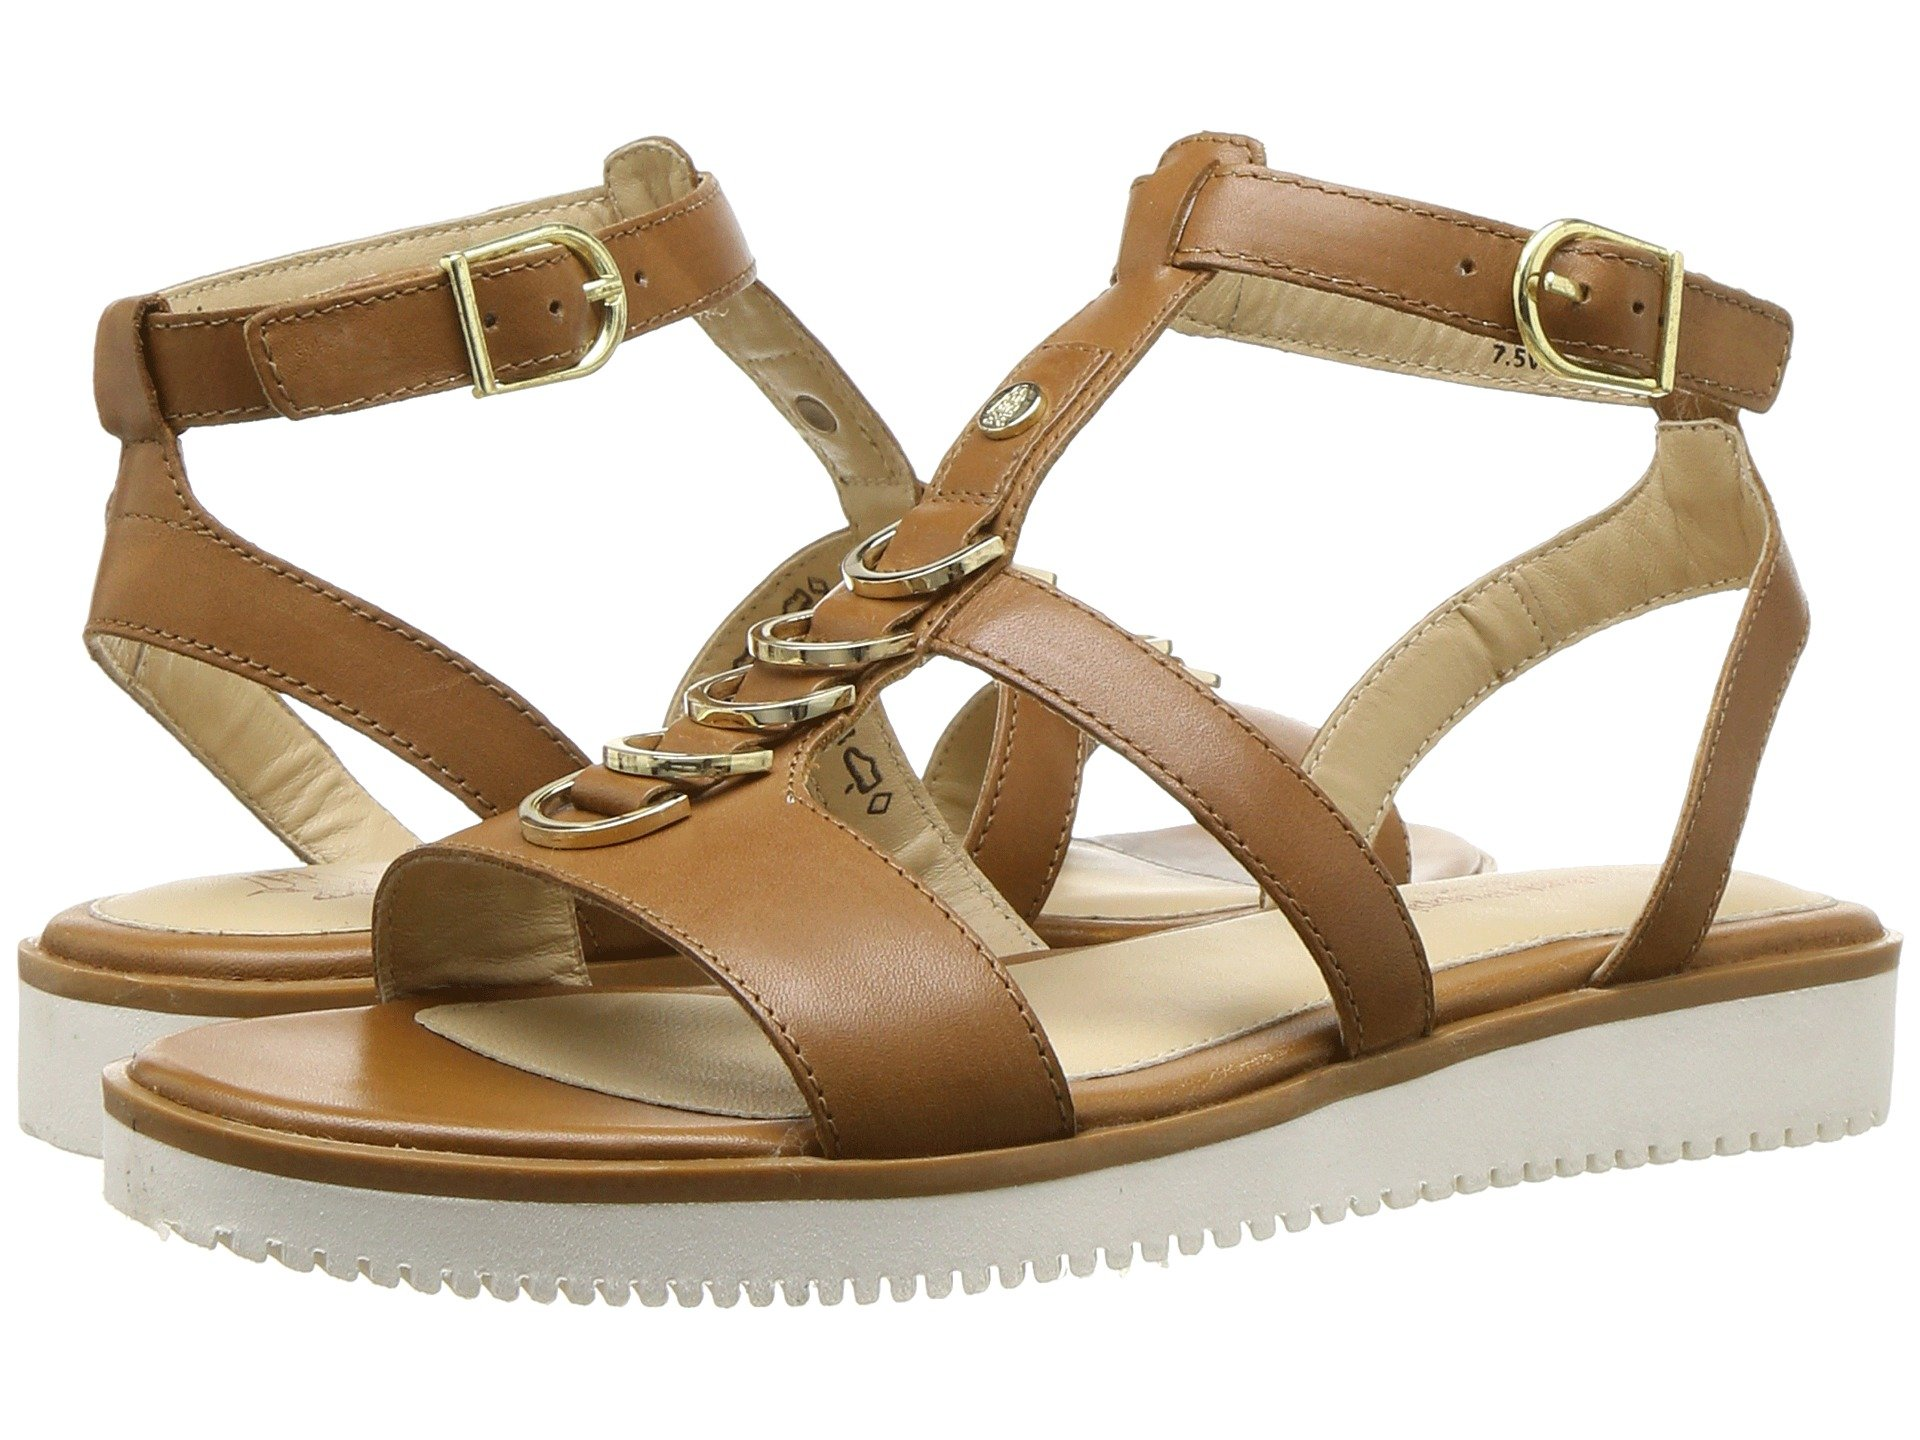 Hush Puppies Hush Puppies Briard Ring T-Strap